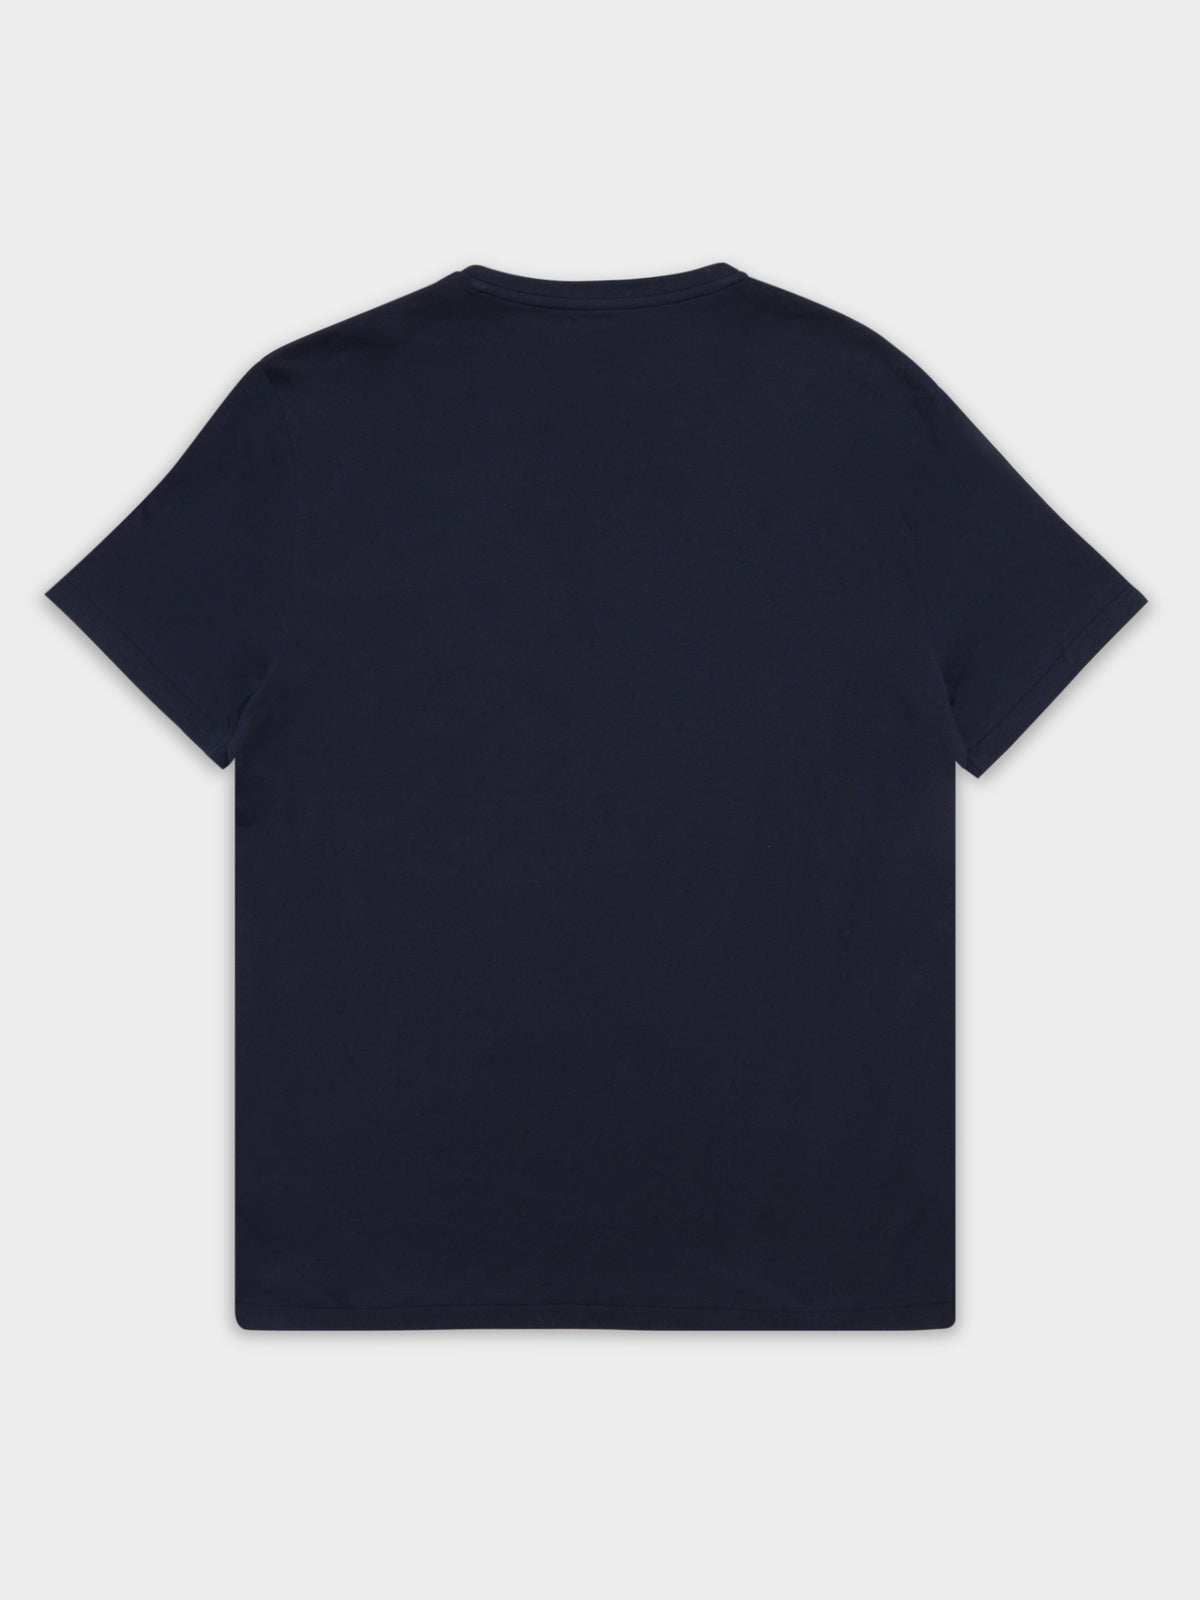 Polo 1967 Print T-Shirt in Navy Blue